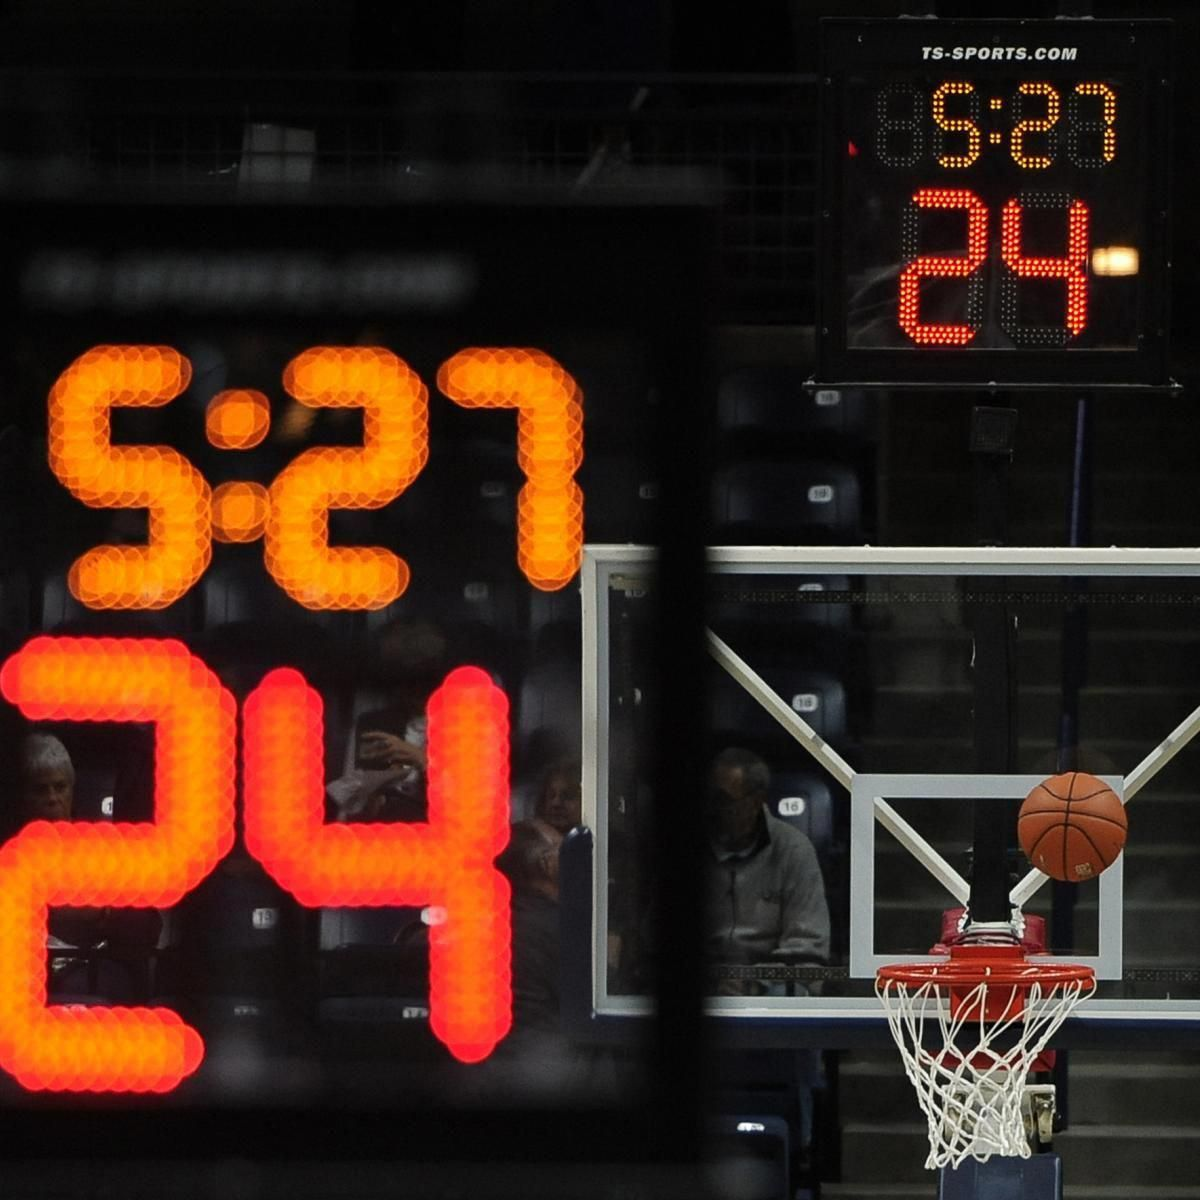 Nba Board Of Governors Approves Shot Clock Clear Path Foul Rule Changes Clock Basketball Rules Rebounding